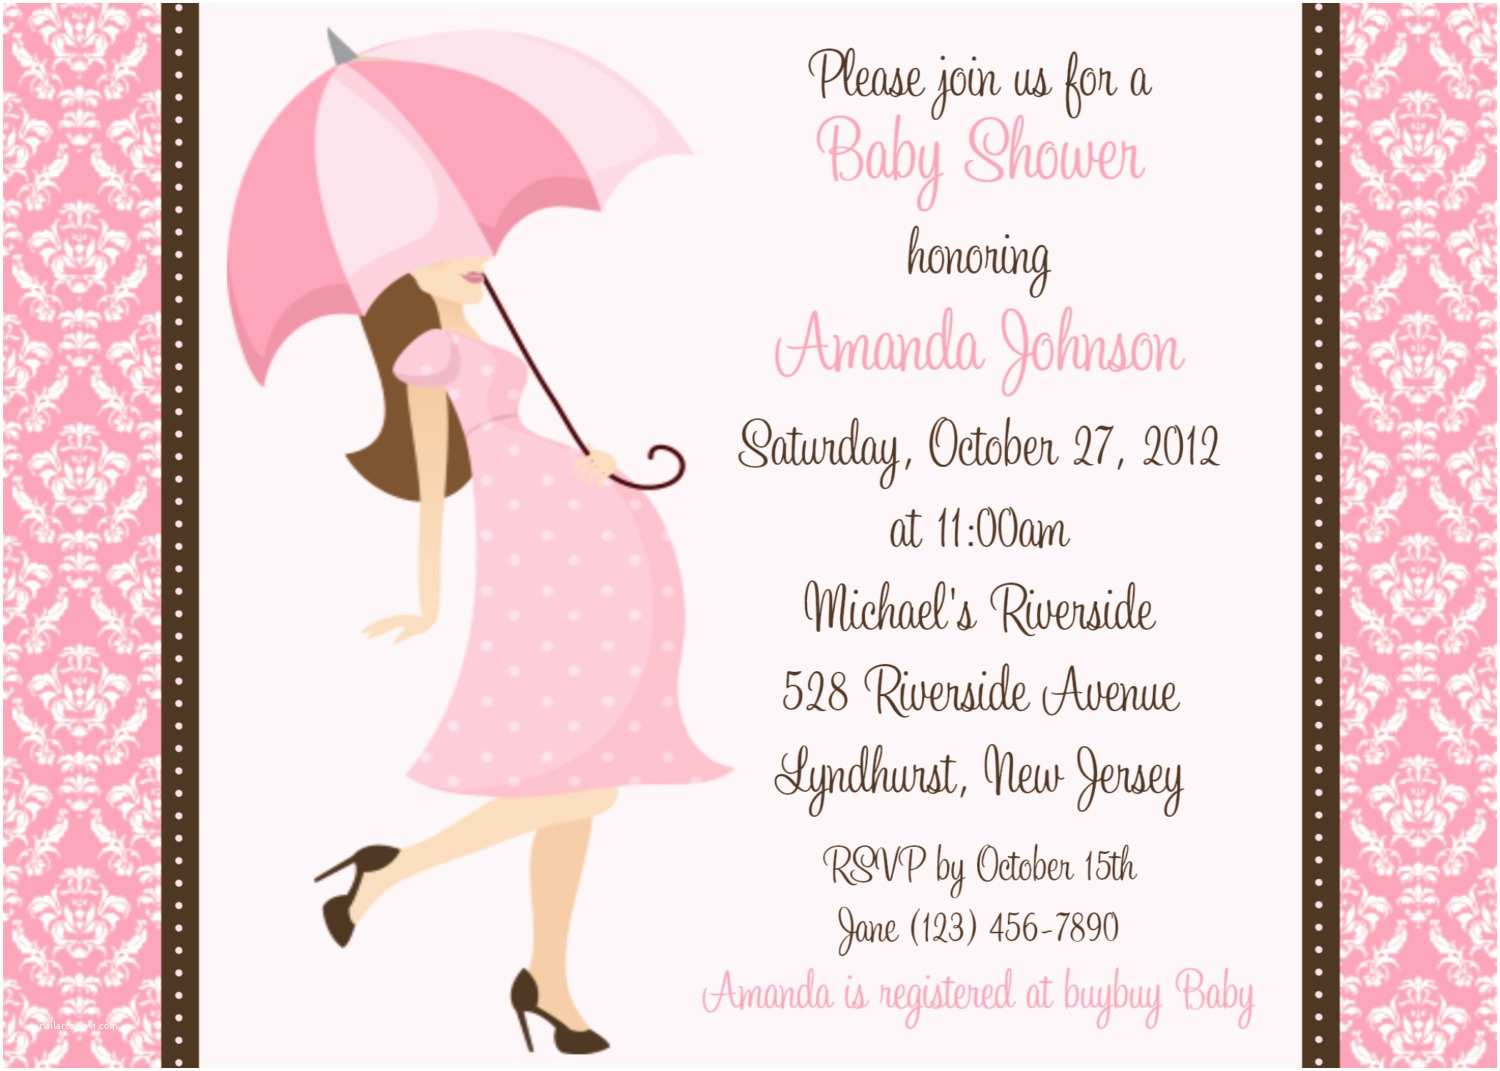 Baby Shower Invitations Girl Baby Shower Invitation Wording Fashion & Lifestyle